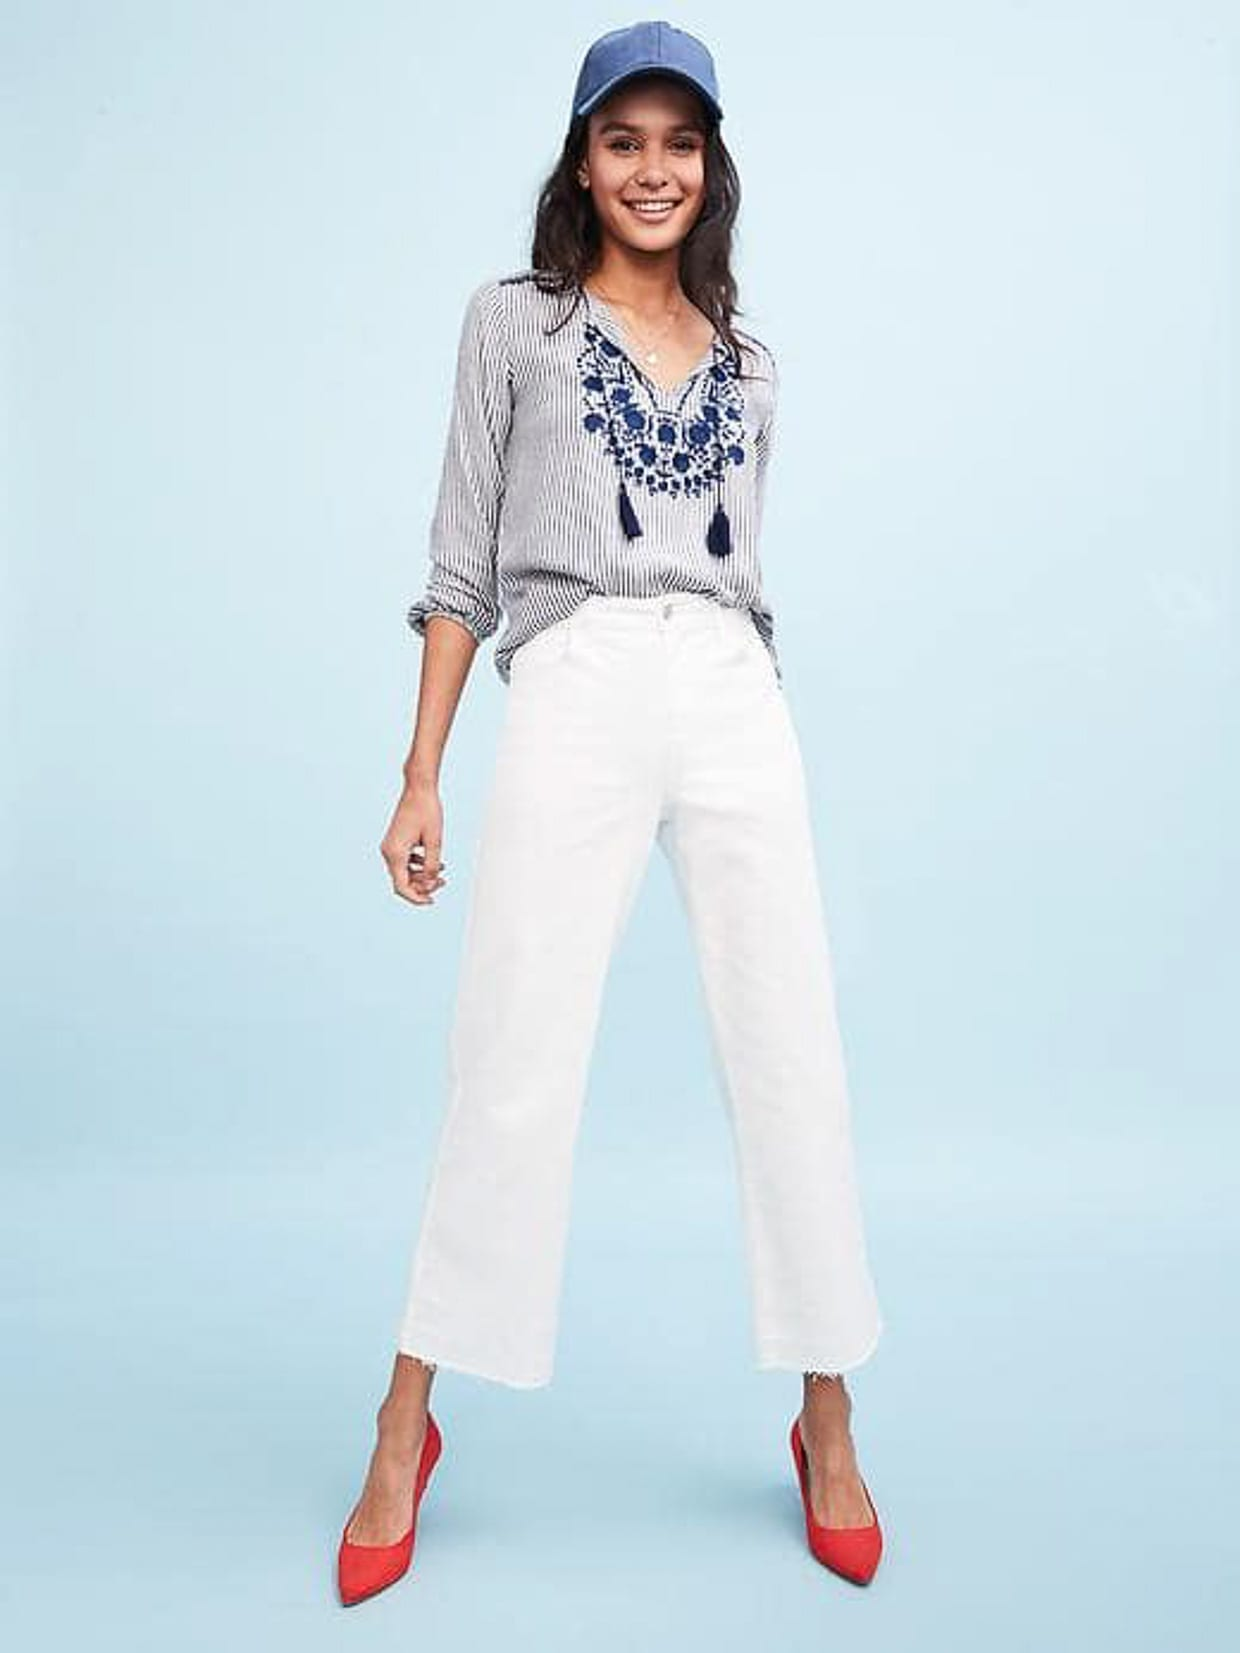 d8923bd8ed Old Navy Outfit Inspiration For Spring - Poor Little It Girl